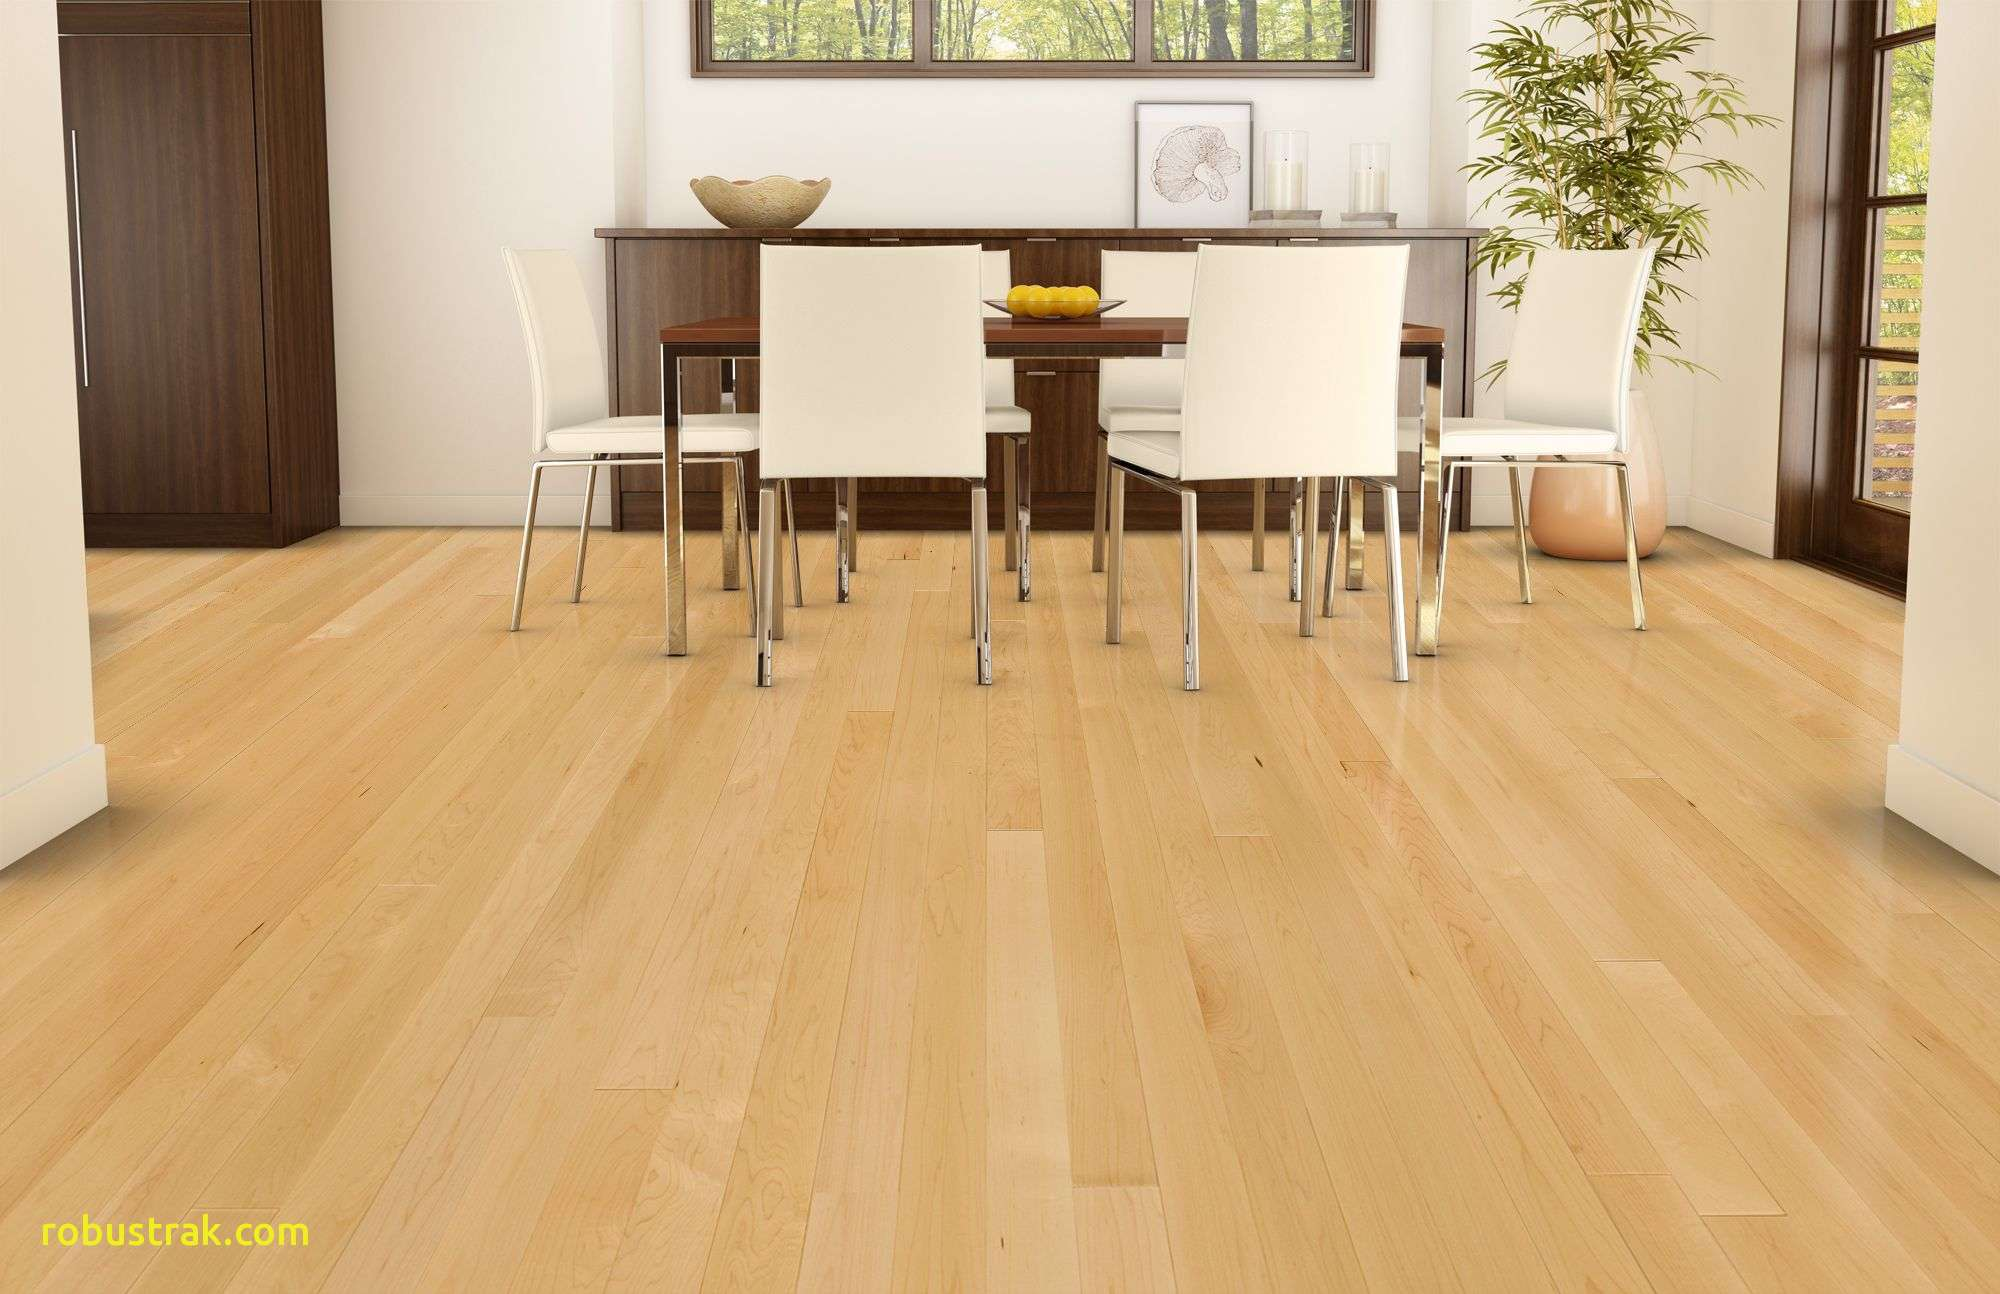 maple hardwood floor maple solid flooring maple solid hardwood flooring at brand floors brand  floors VUNKXTL